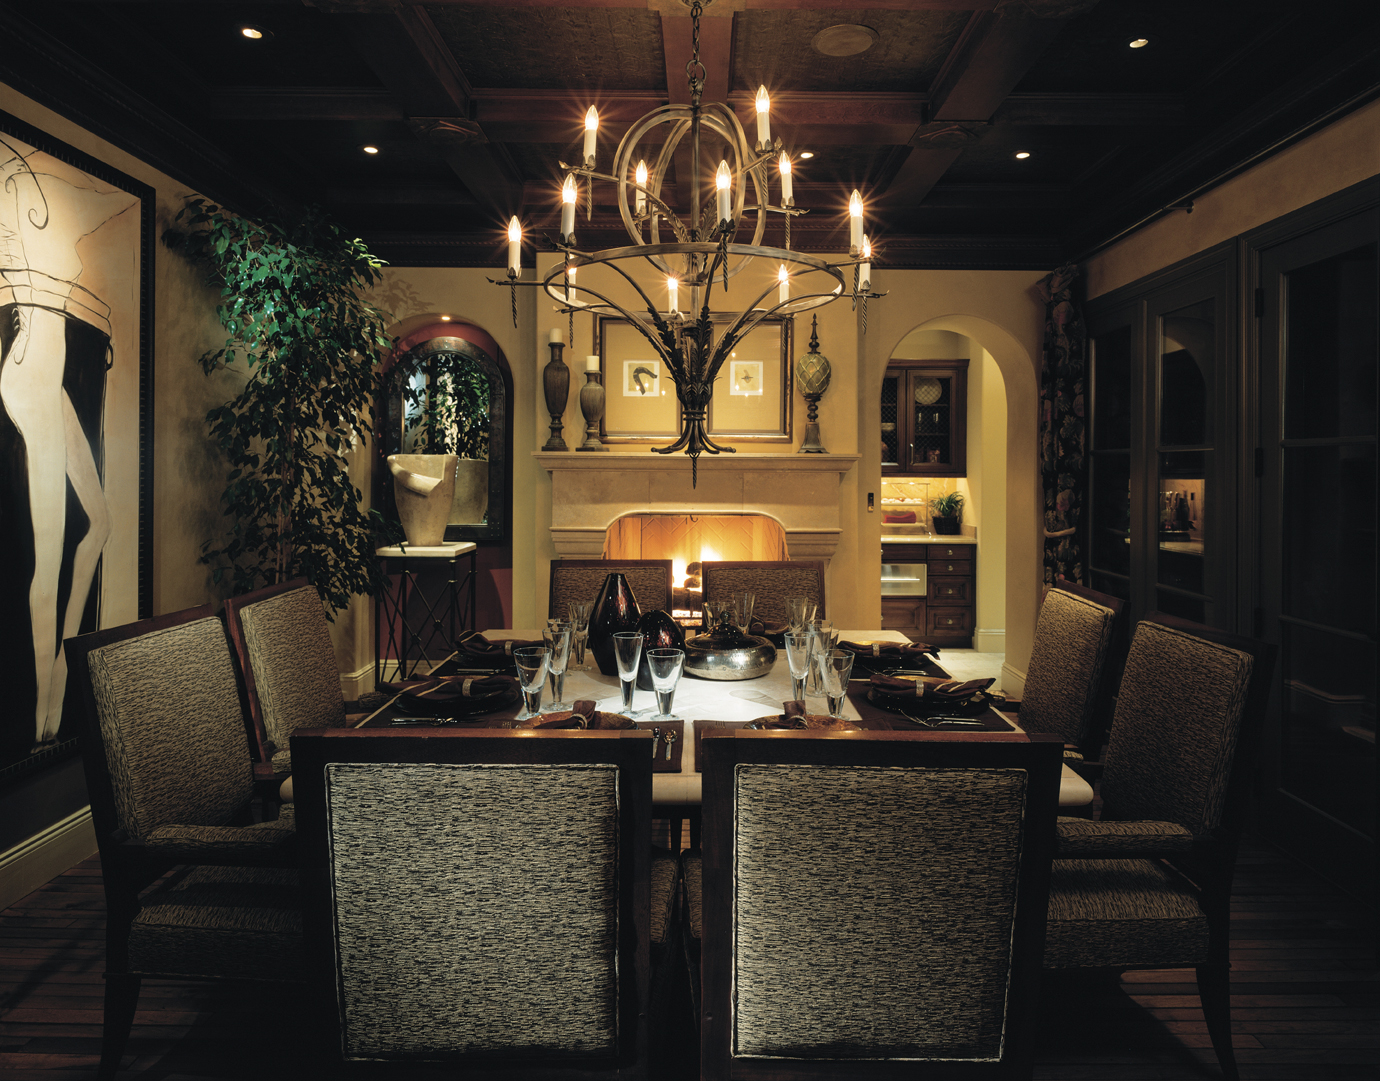 Unique dining room lighting large and beautiful photos photo to select unique dining room - Unique dining room ...